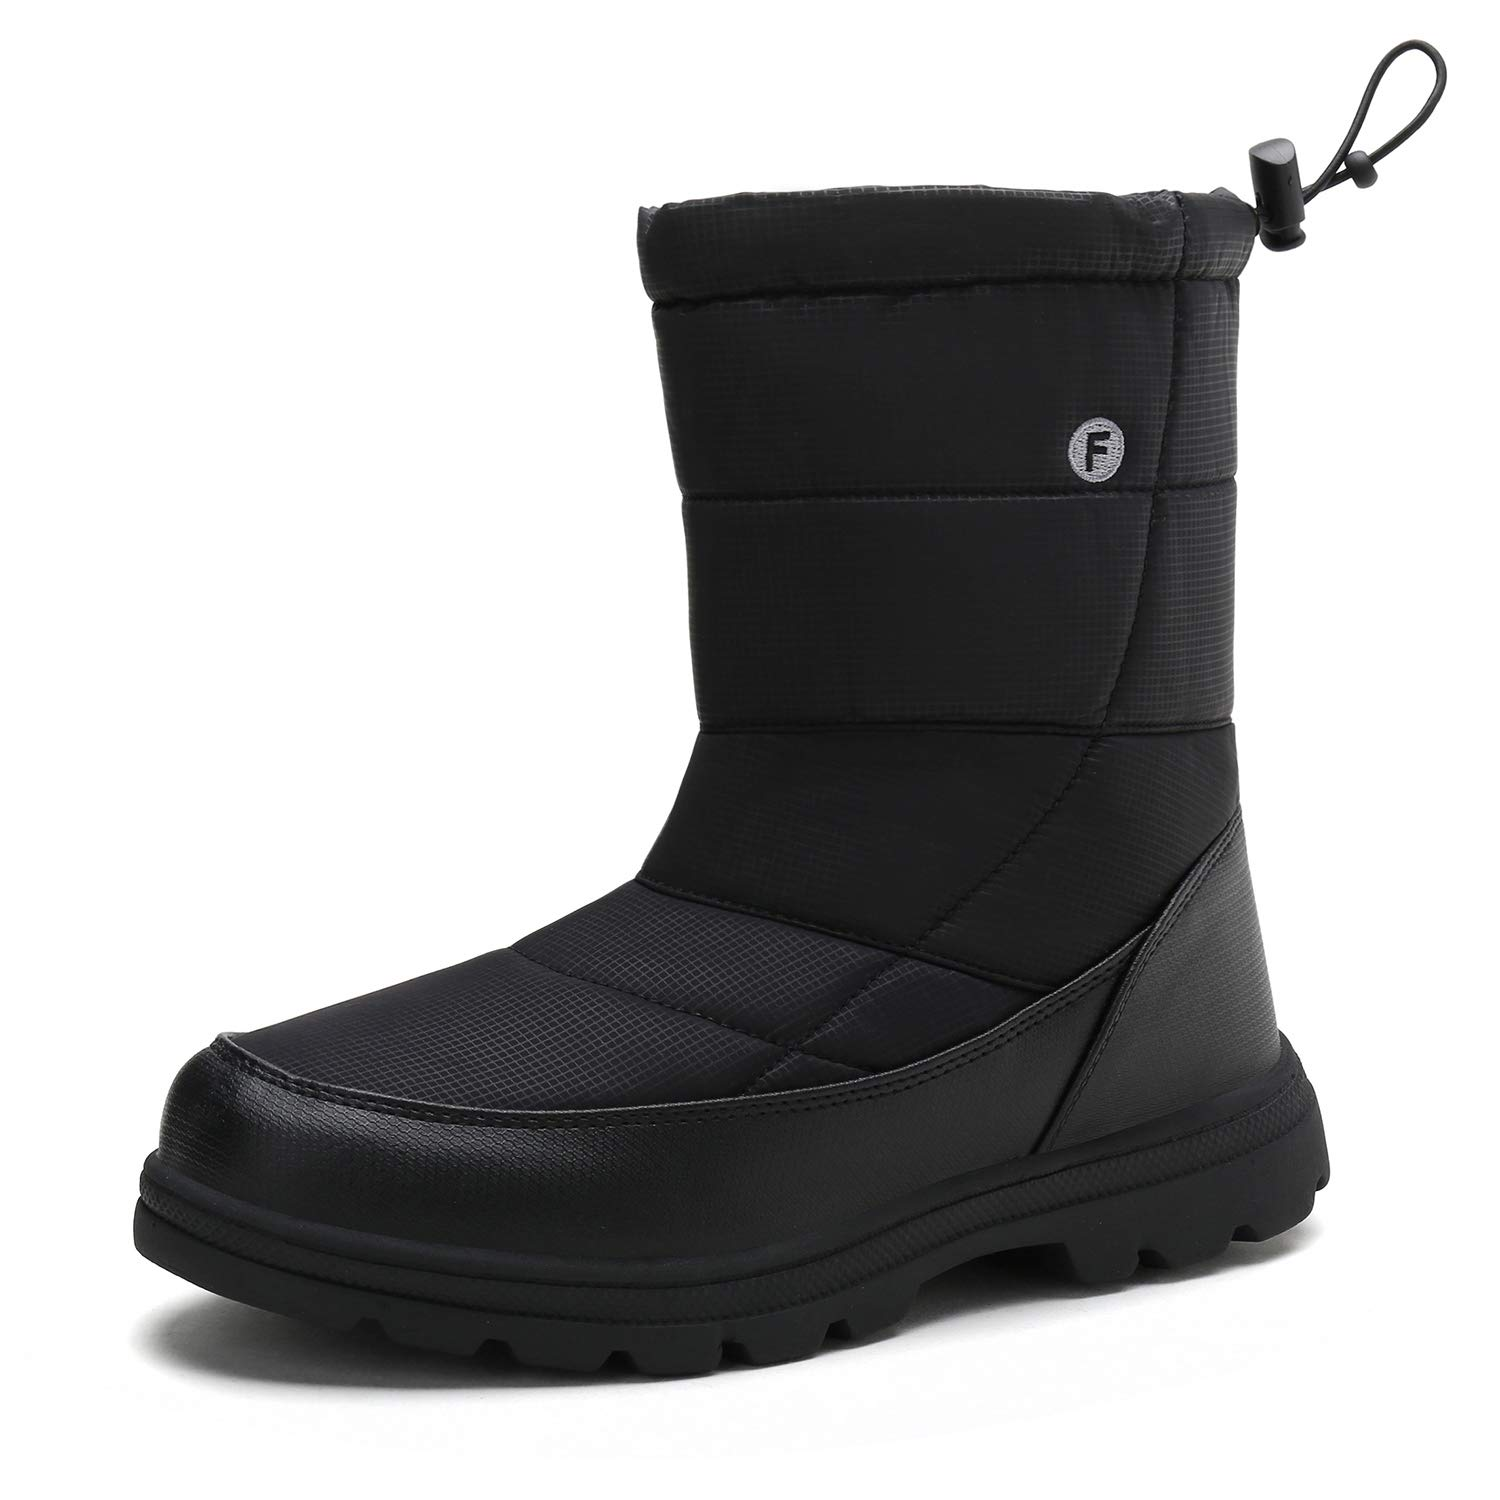 d6278607c5c Snow Boots Mens Womens Winter Fur Lined Waterproof Warm Boots Outdoor  Walking Non-Slip Shoes with High Traction Sole